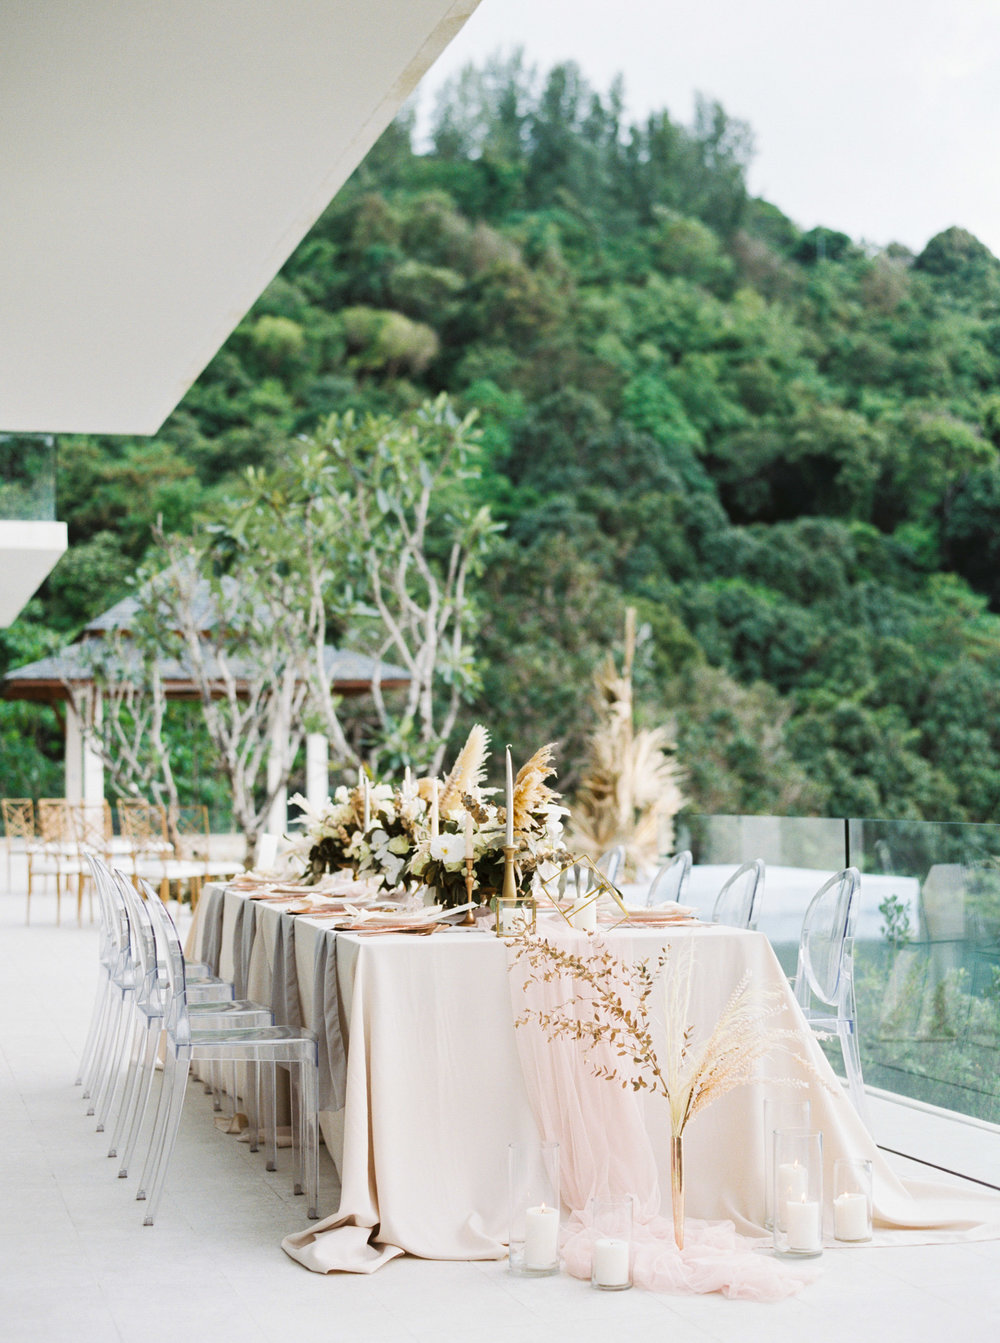 Destination Wedding Phuket Thailand Fine Art Film Photographer Sheri McMahon-00051-51.jpg